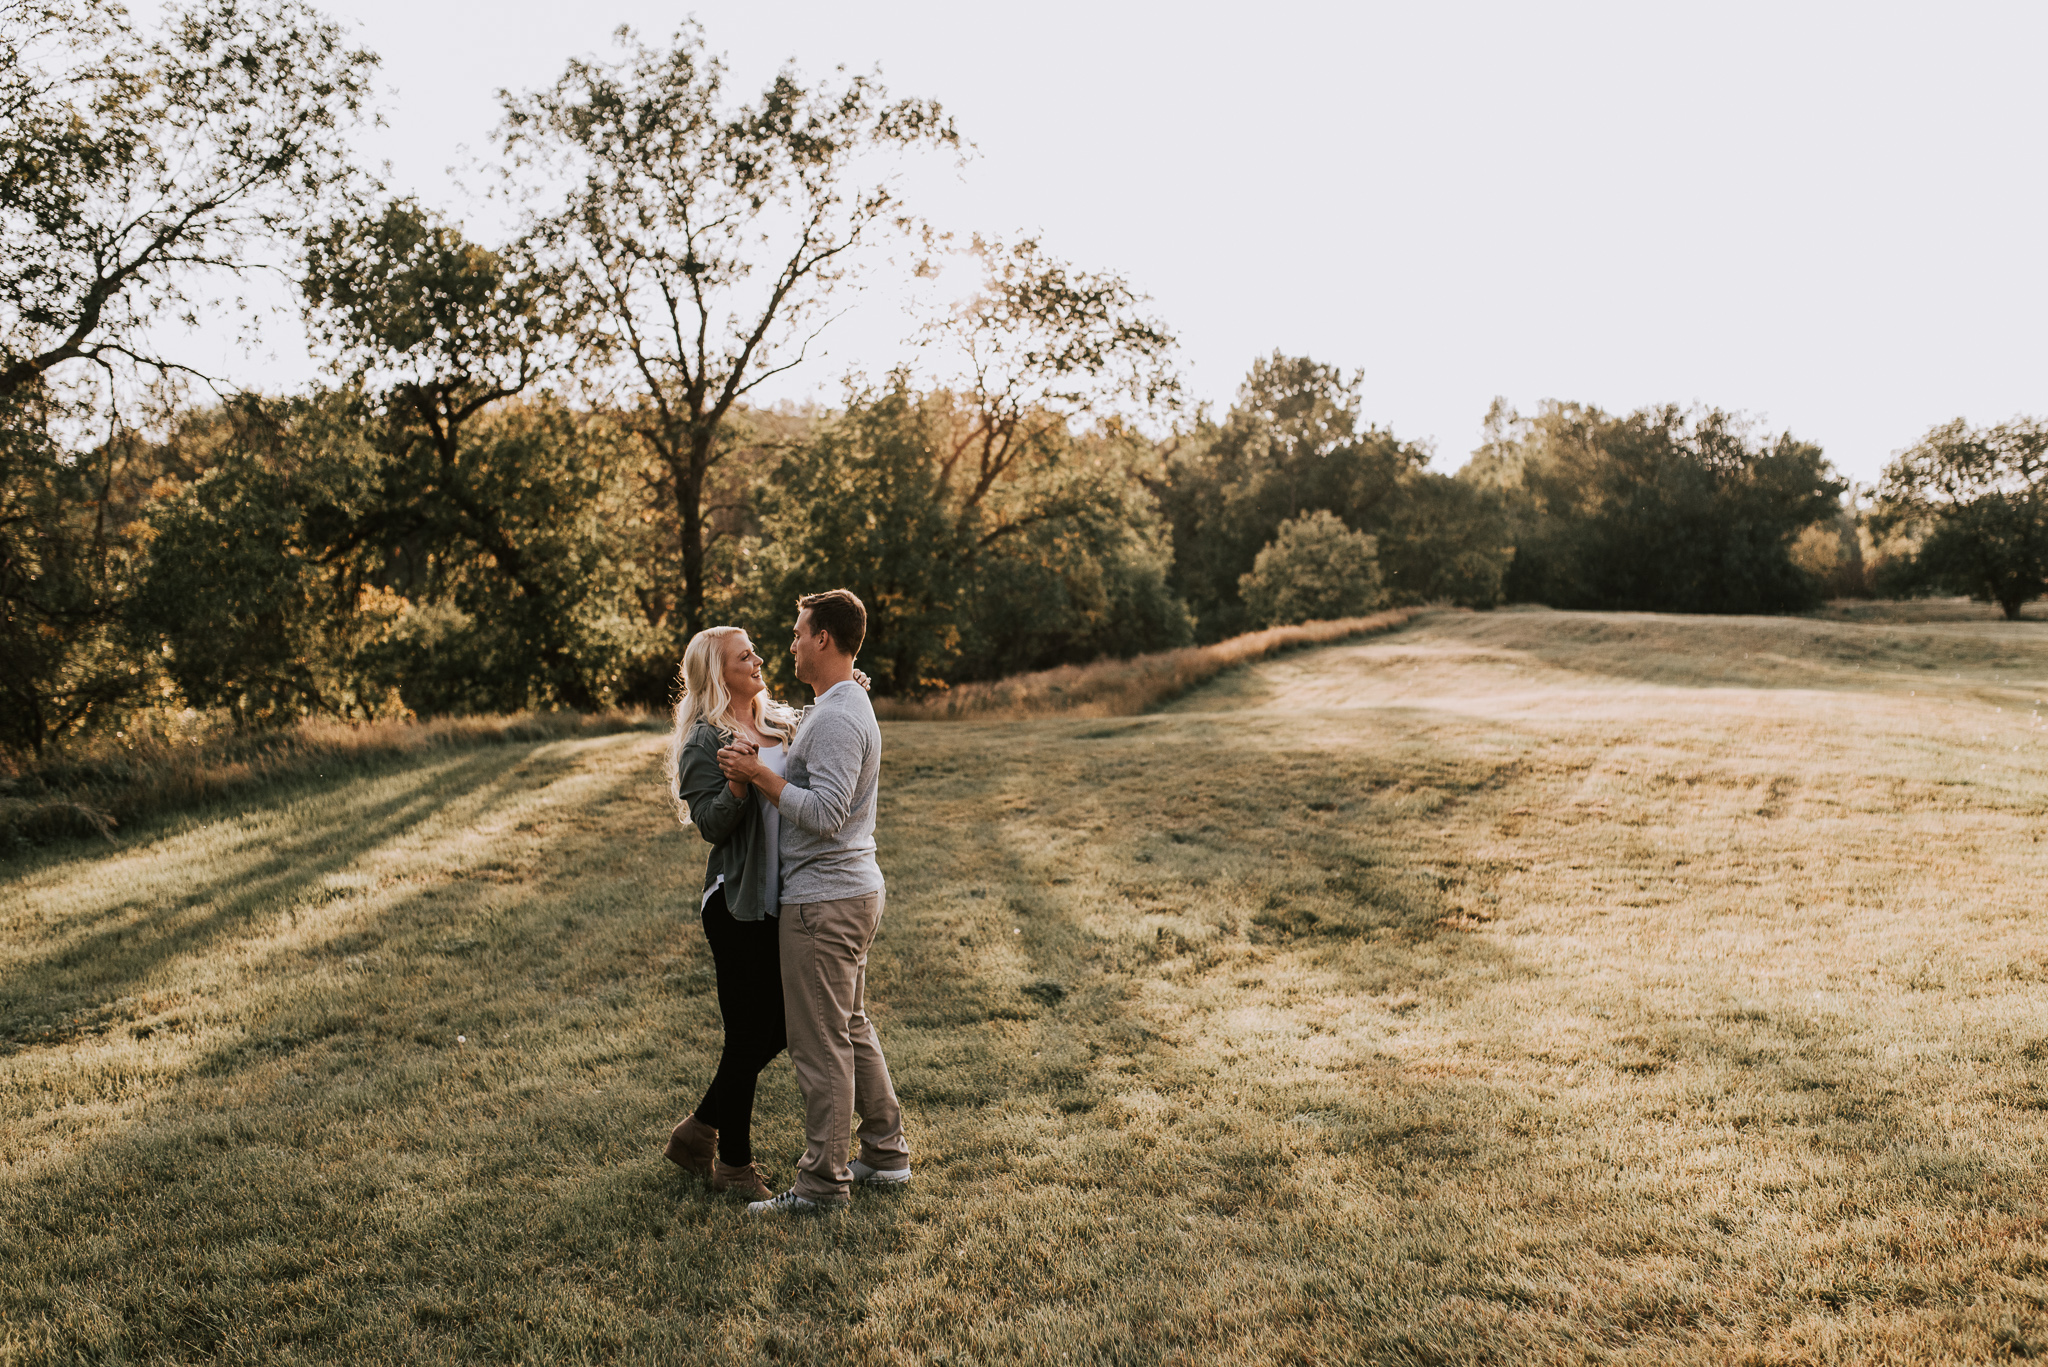 fort-lincoln-state-park-engagement-wedding-photography-5.jpg